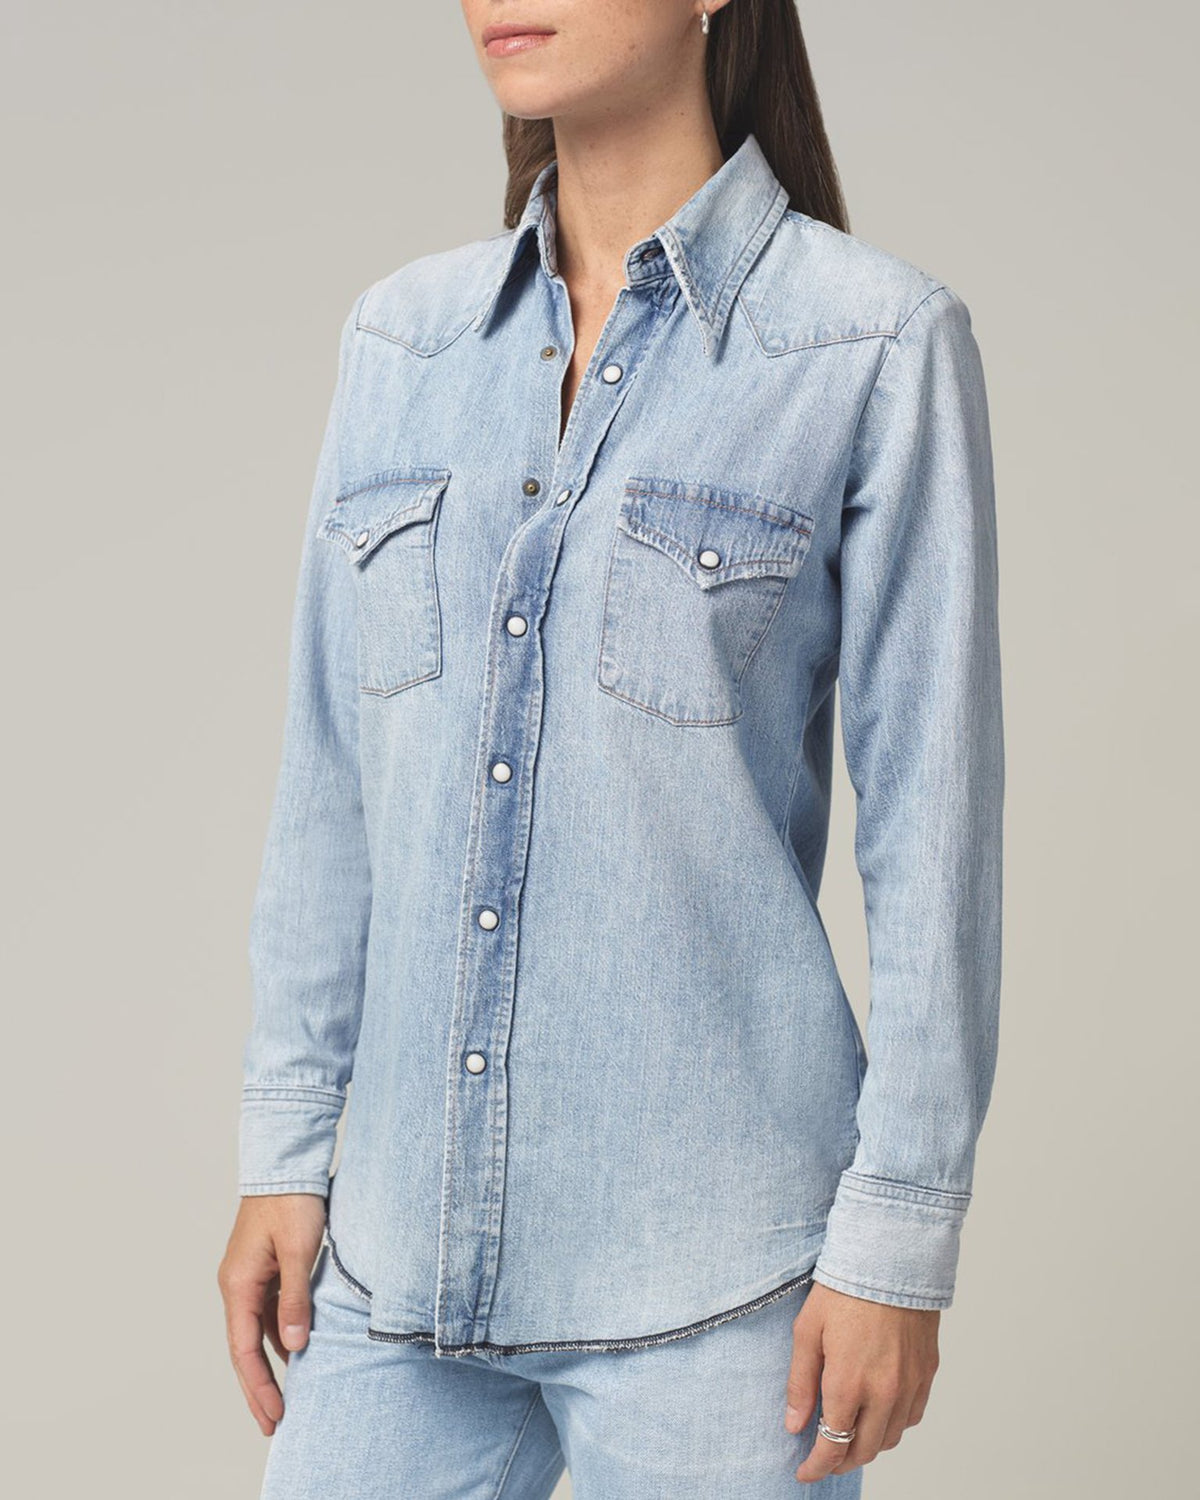 Citizens of Humanity Clothing Jules Slim Western Shirt in Sweet Thing